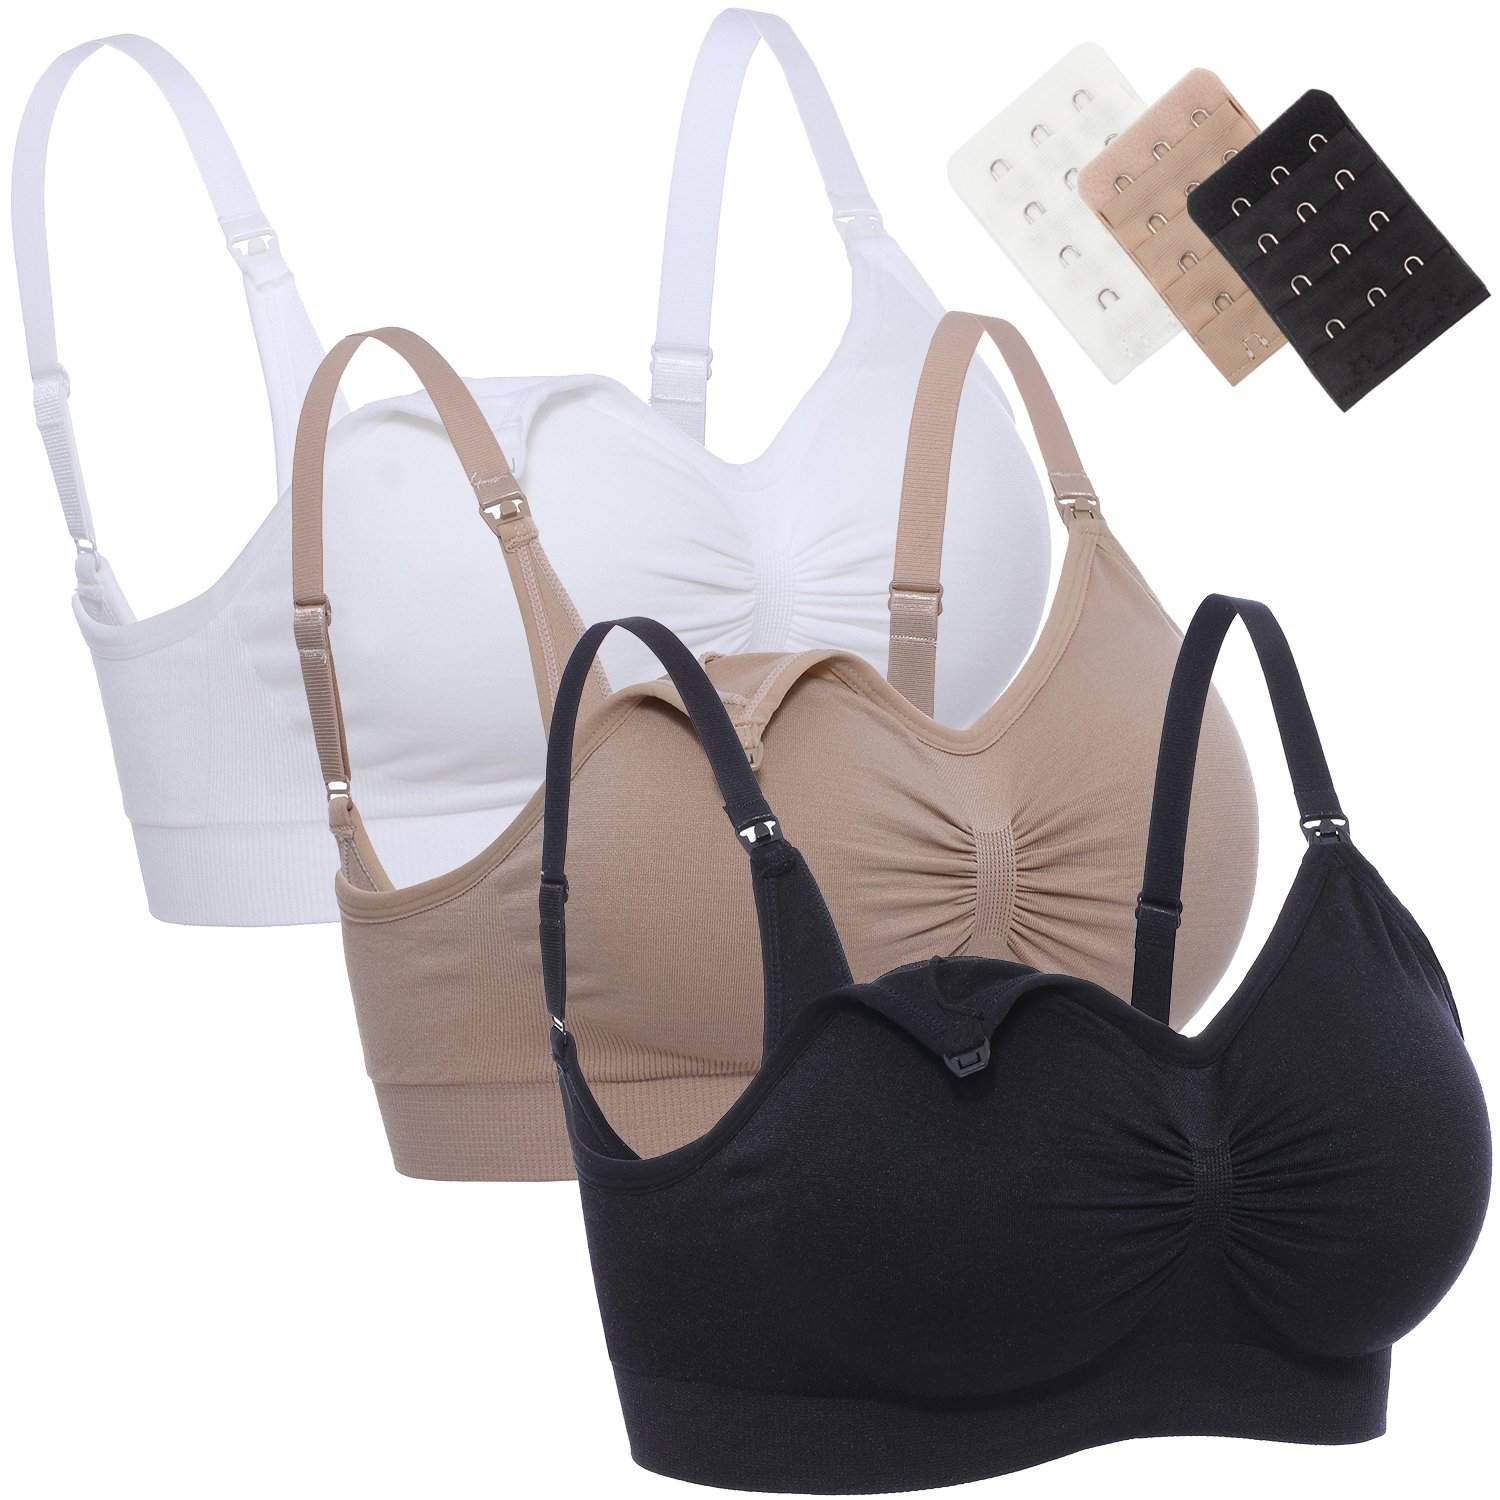 e2706ffcaa Junlan Womens Nursing Bra Maternity Bra Sleep Padded Wireless for  Breastfeeding with Free Bras Extenders Black